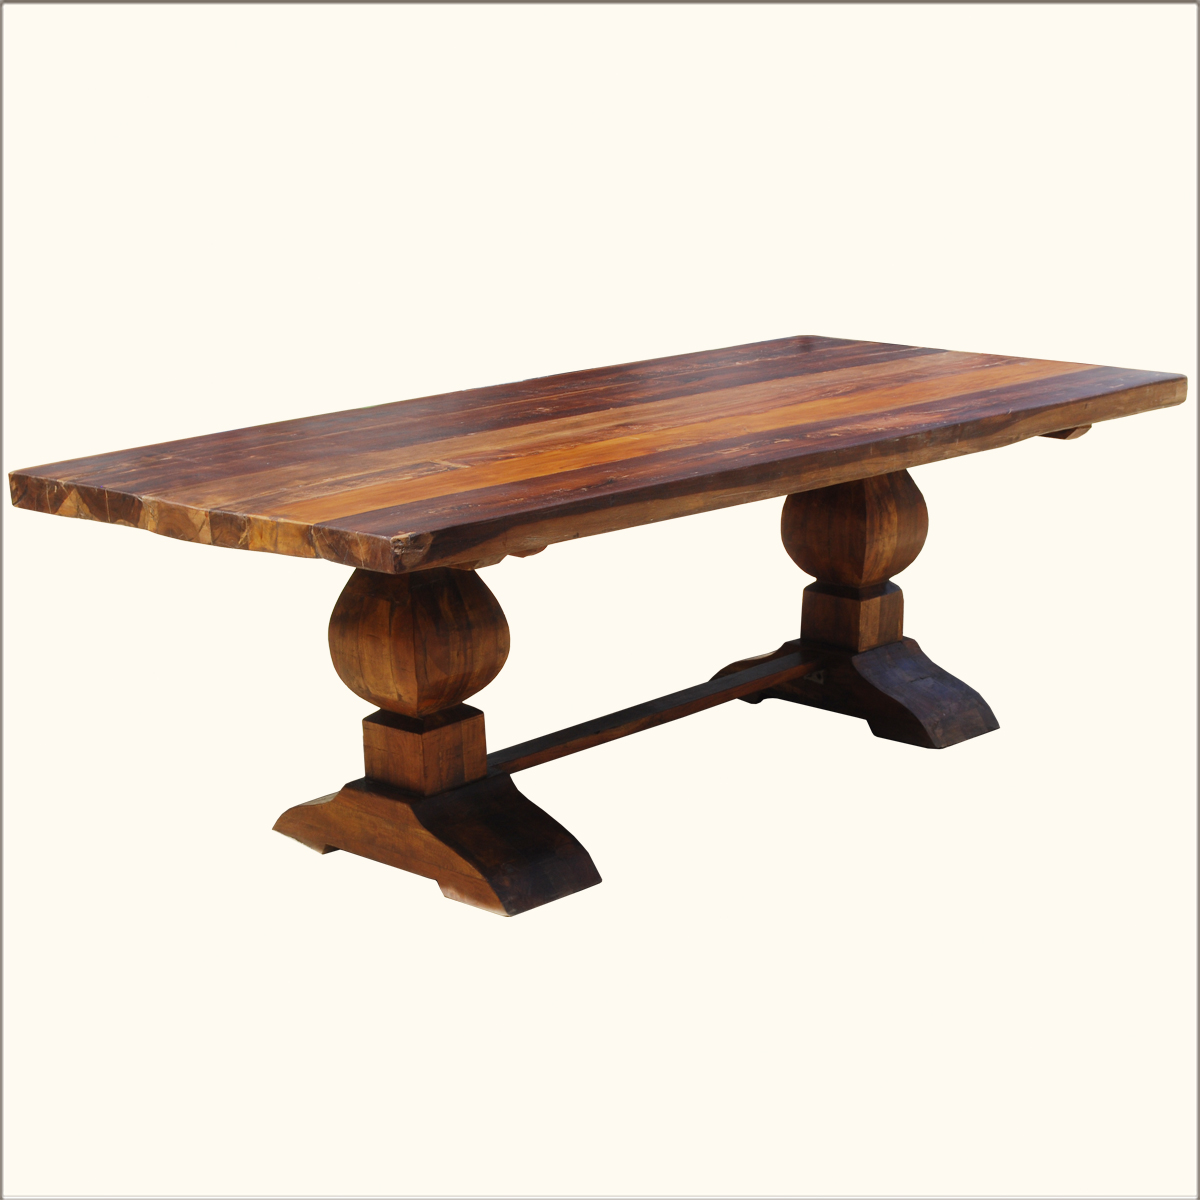 Rustic reclaimed wood double trestle pedestal large 10 person dining room table ebay Trestle dining table